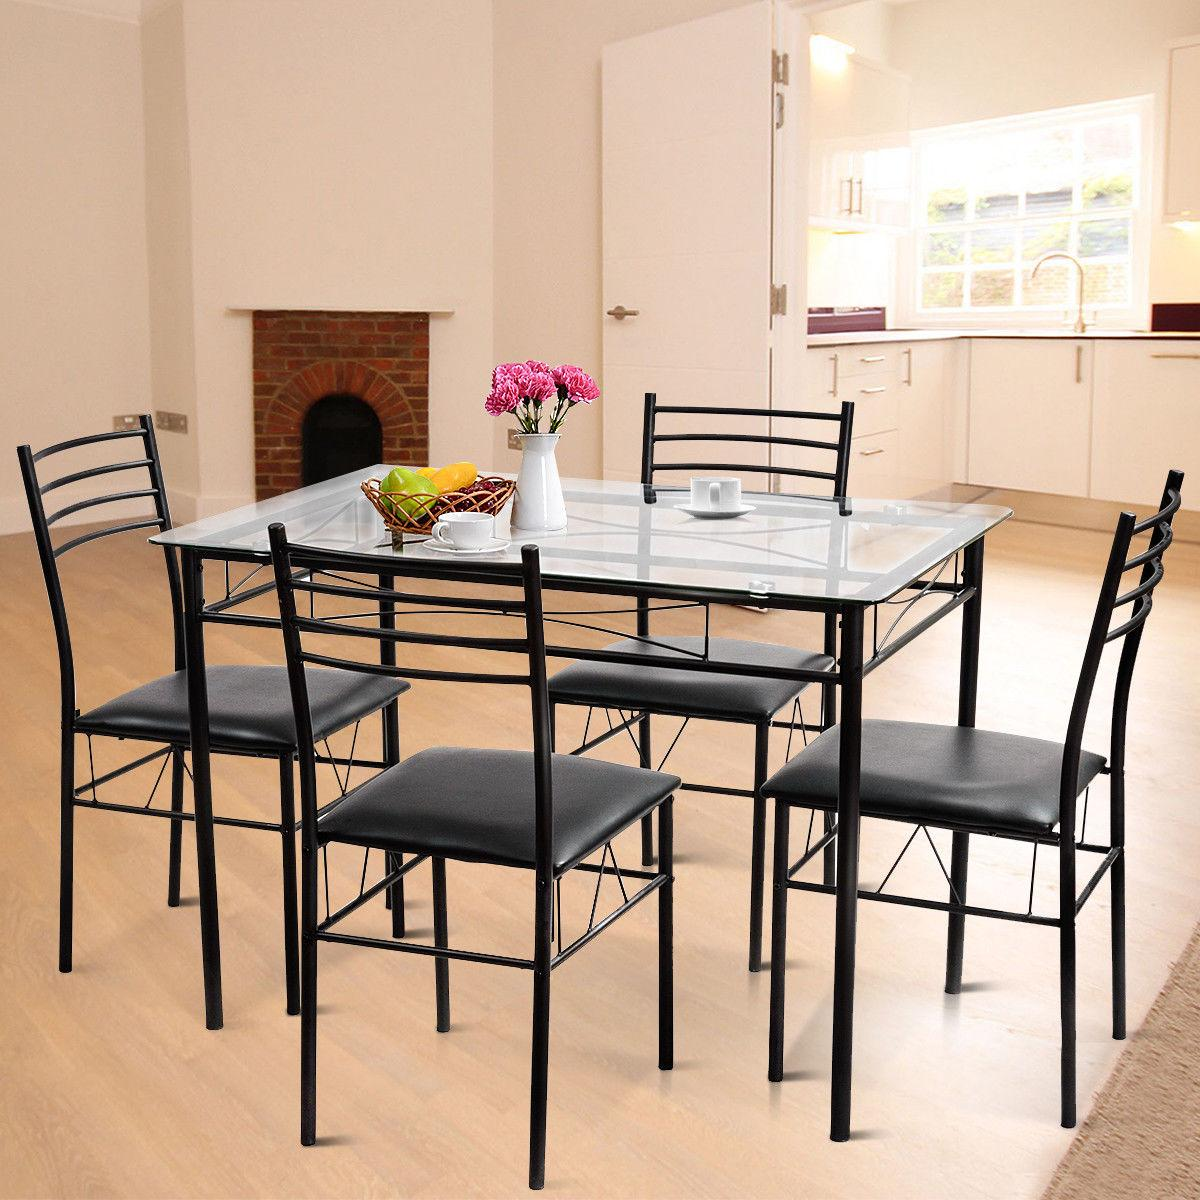 5PC Dining Glass Top 4 Chairs Kitchen Furniture